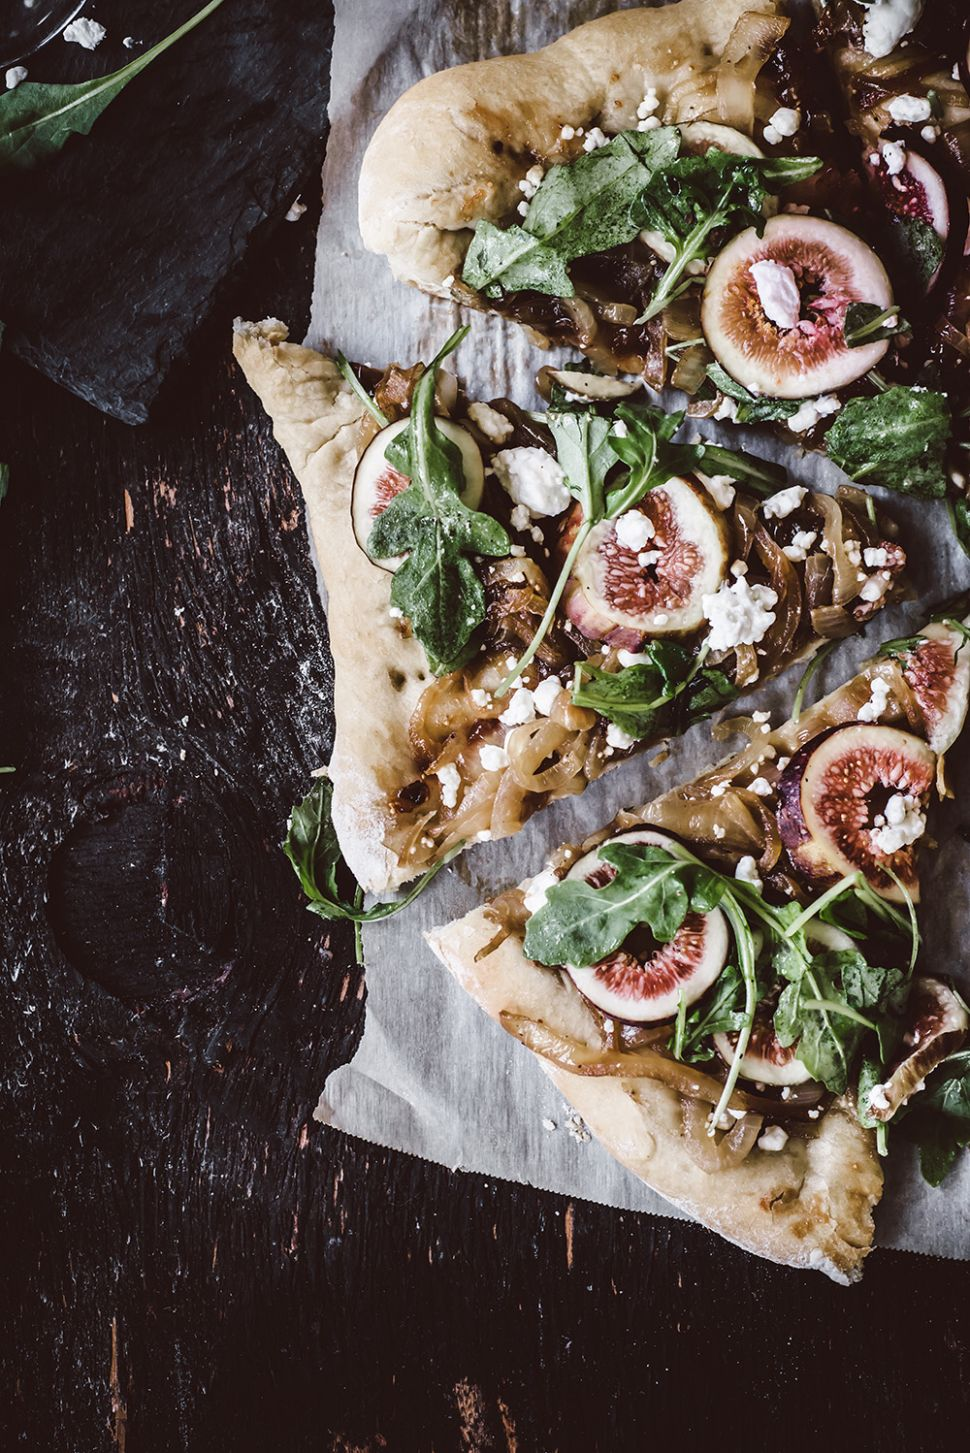 FIG AND SERRANO JAM PIZZA WITH GOAT CHEESE